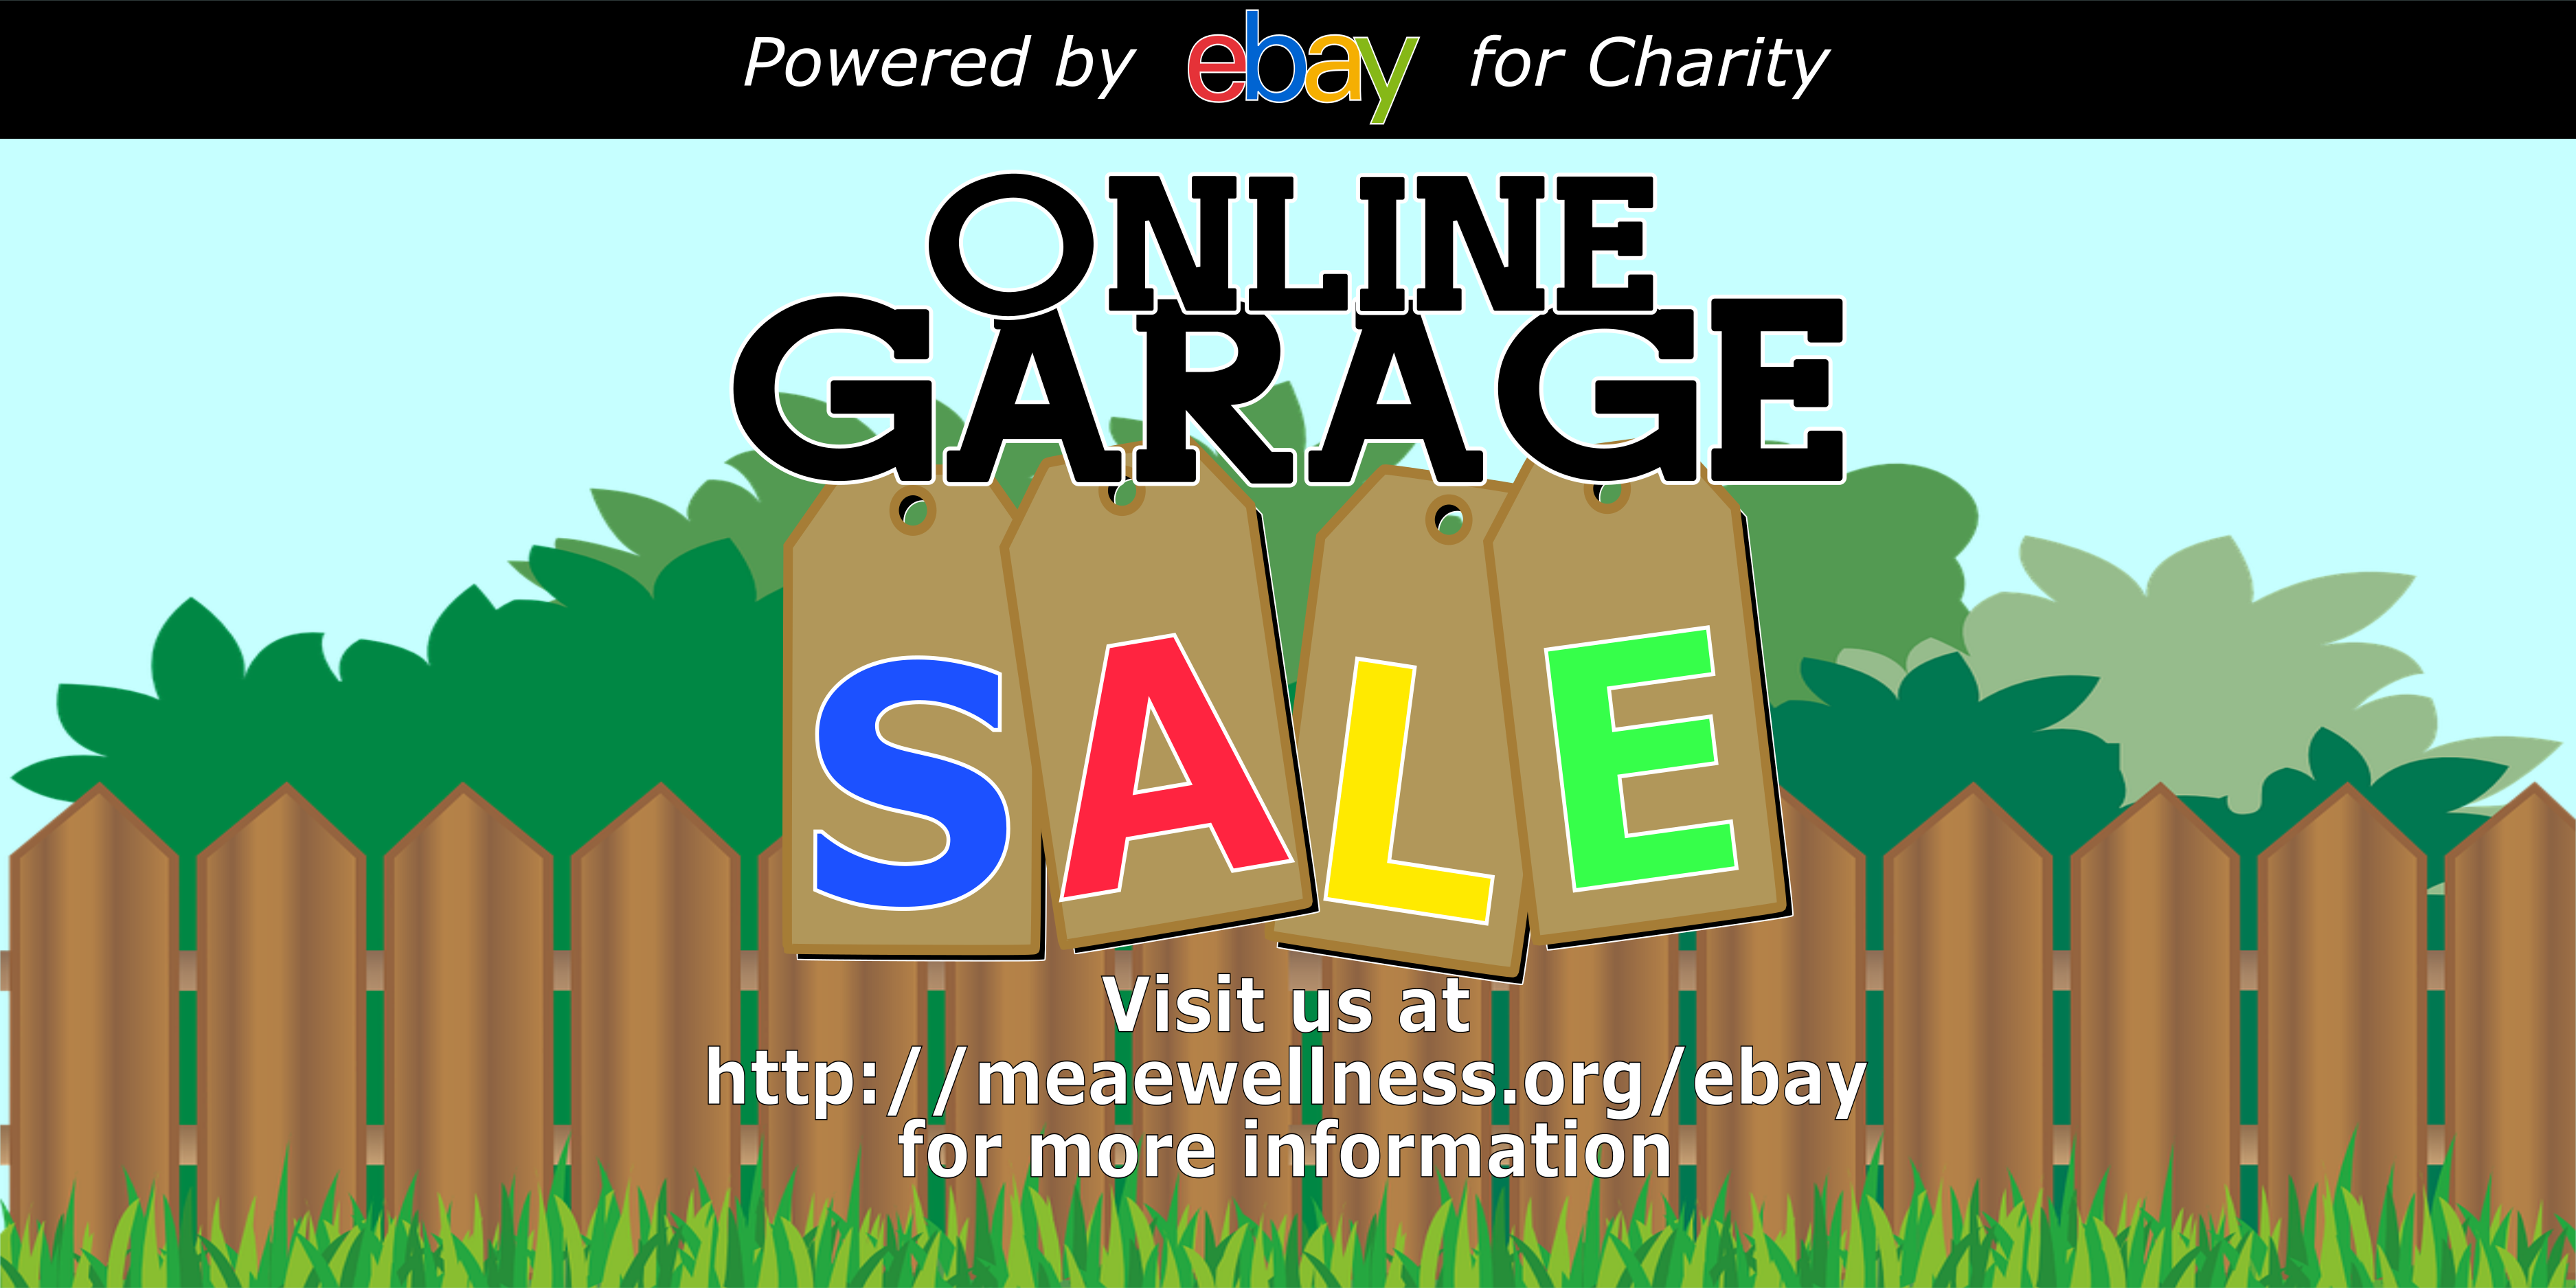 Meae Wellness Online Garage Sale powered by eBay for Charity